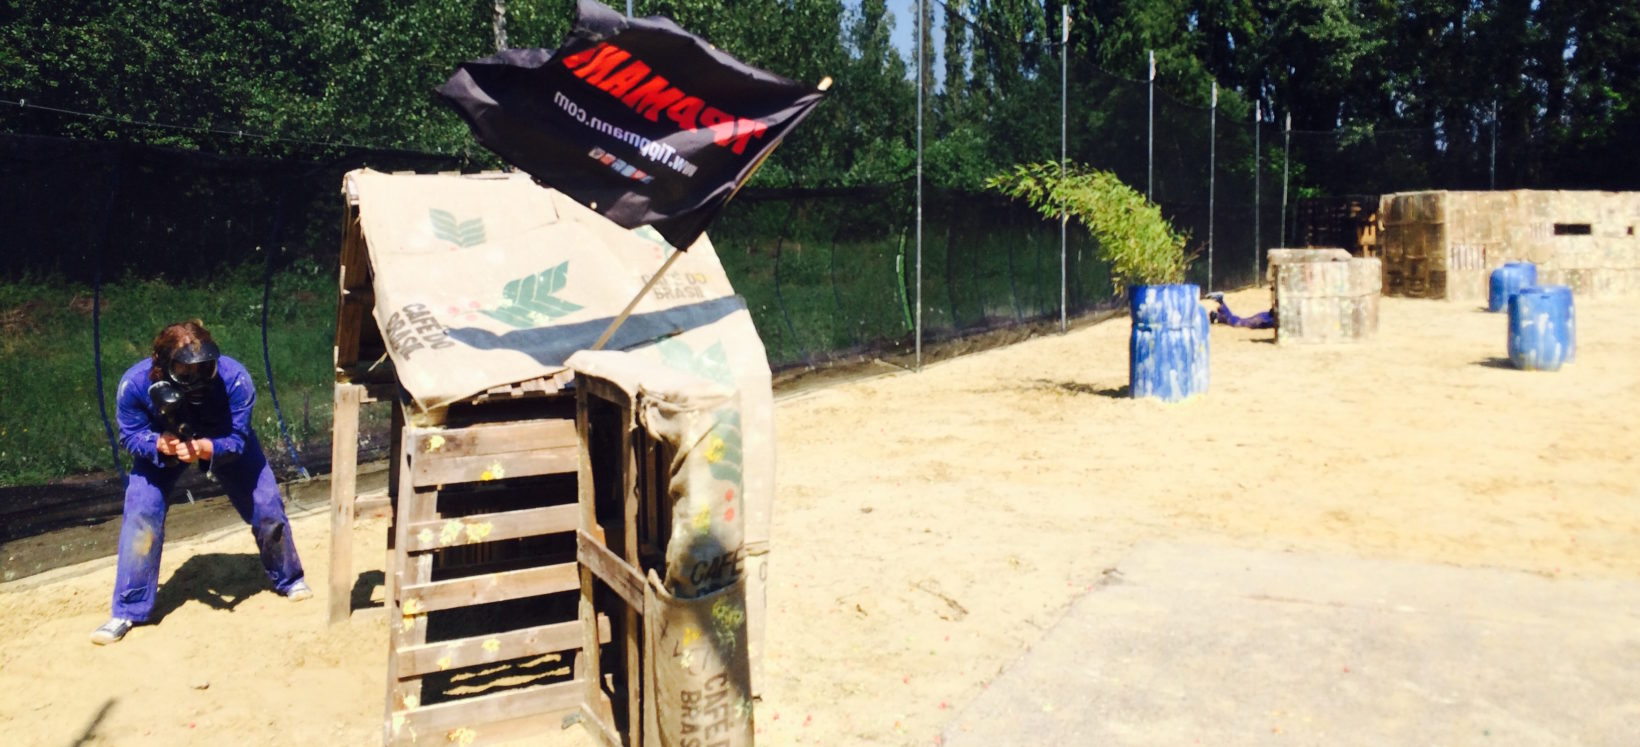 Paintball Mechelen